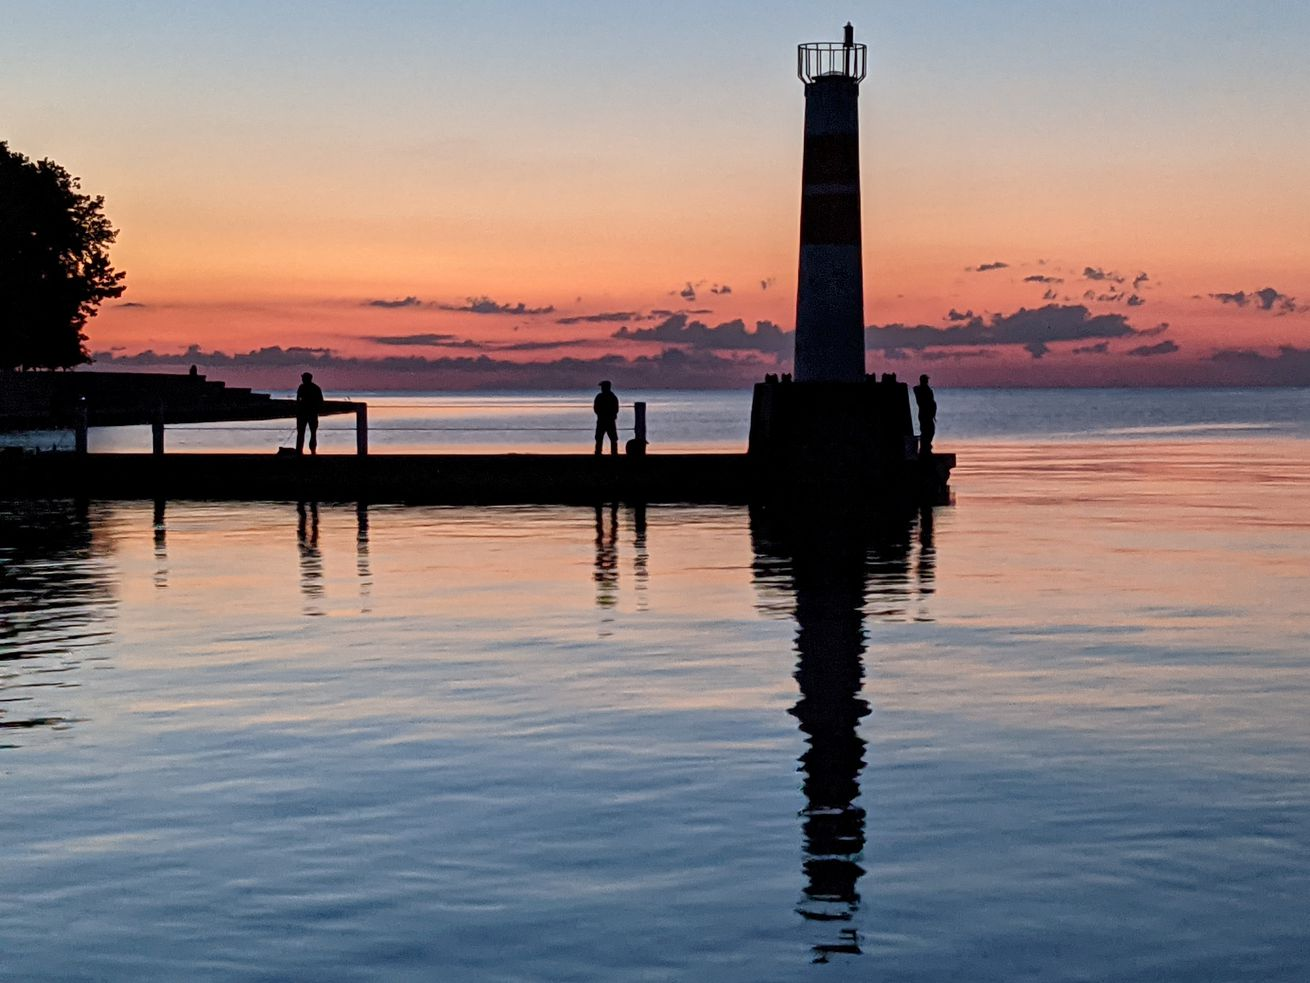 Anglers, trying for early Chinook, on the east jetty at the mouth of Montrose Harbor silhouetted in the pre-dawn half light. Credit: Dale Bowman